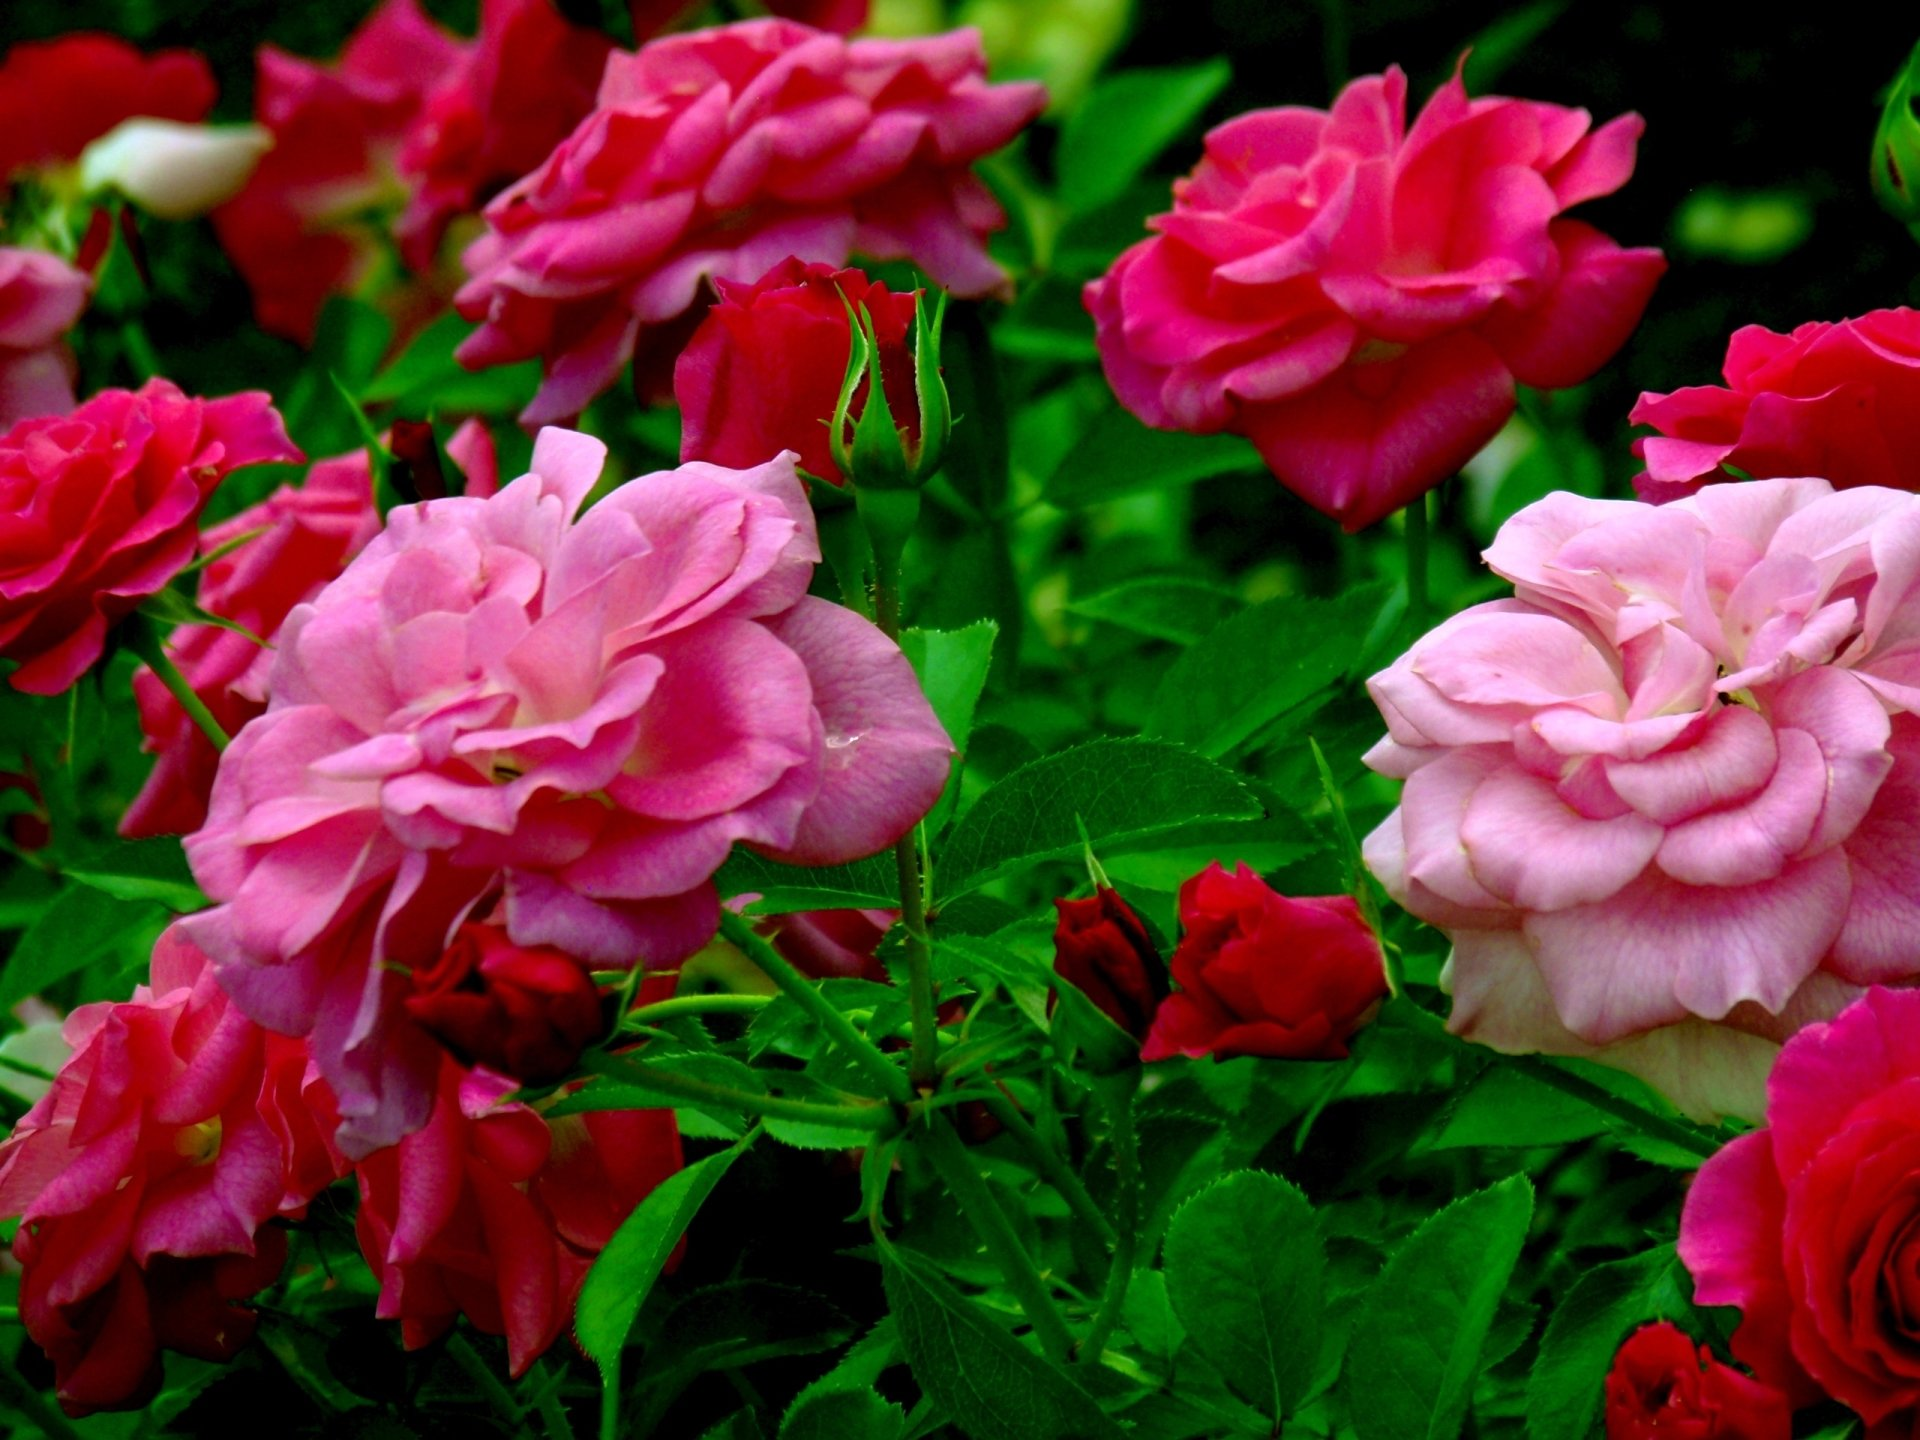 Light and dark pink roses hd wallpaper background image - Red flower desktop wallpaper ...